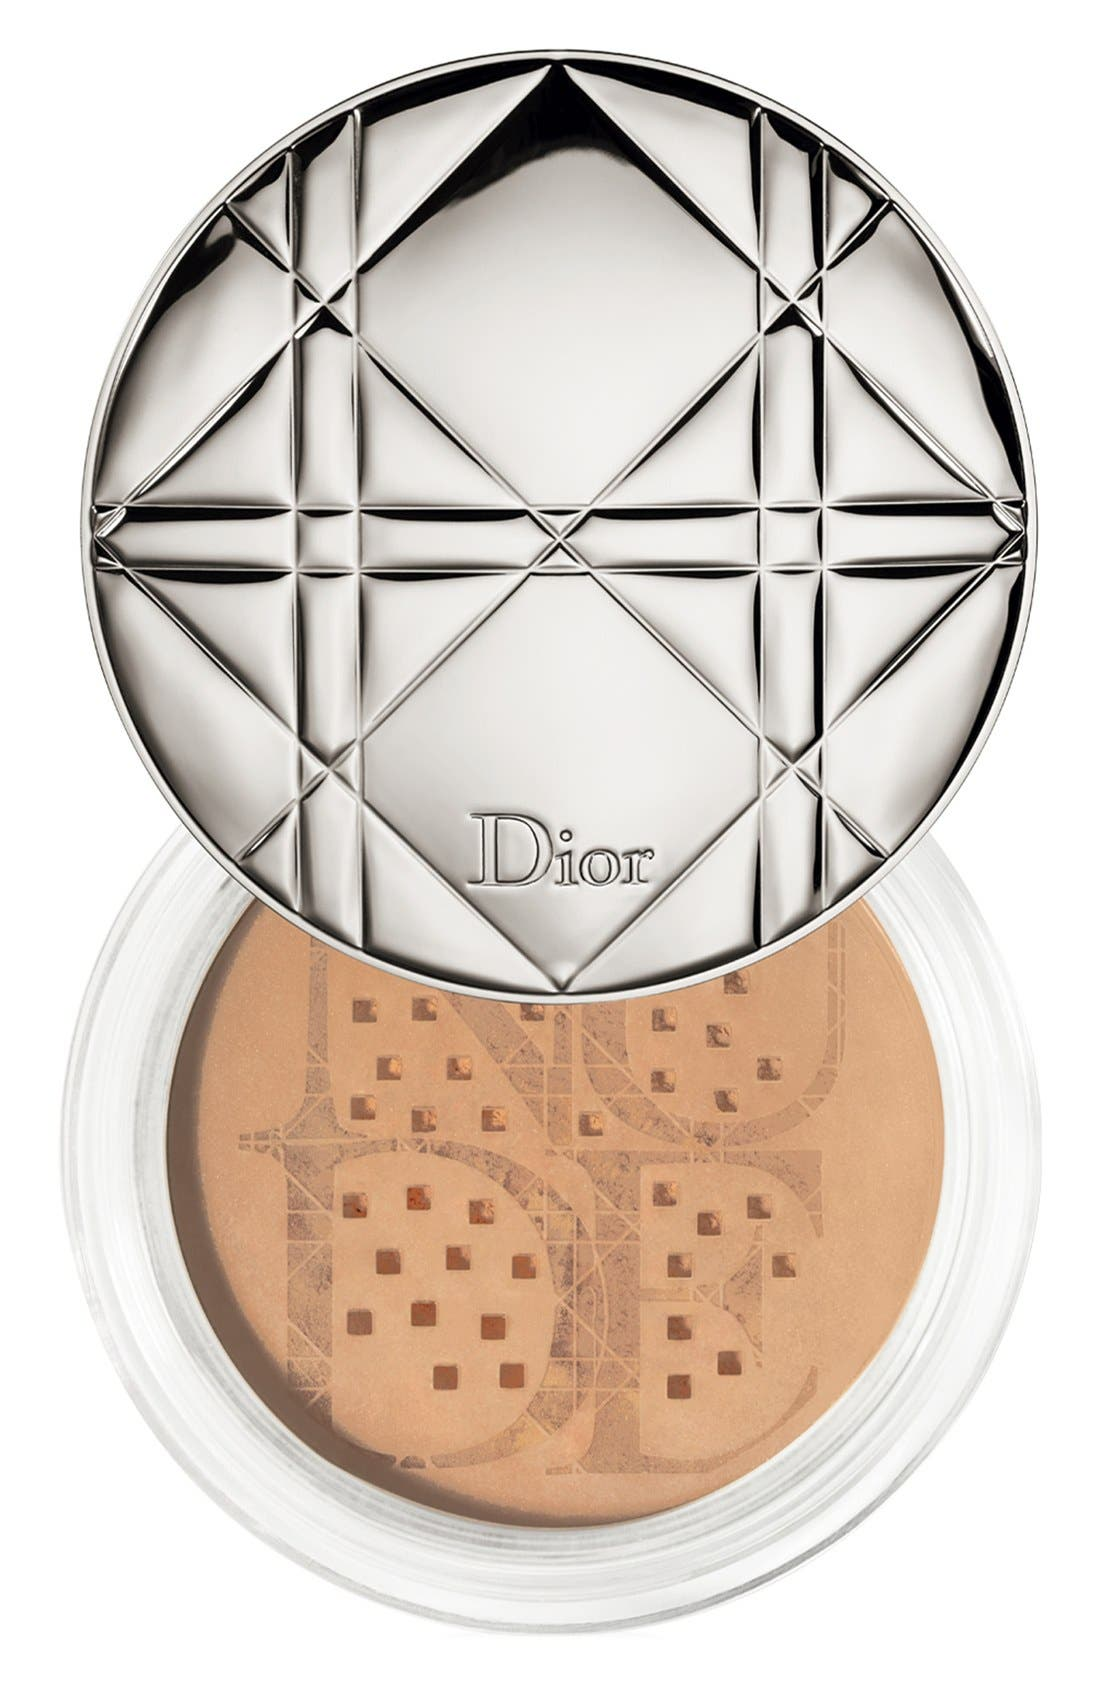 Diorskin Nude Air Healthy Glow Invisible Loose Powder,                         Main,                         color, 040 HONEY BEIGE